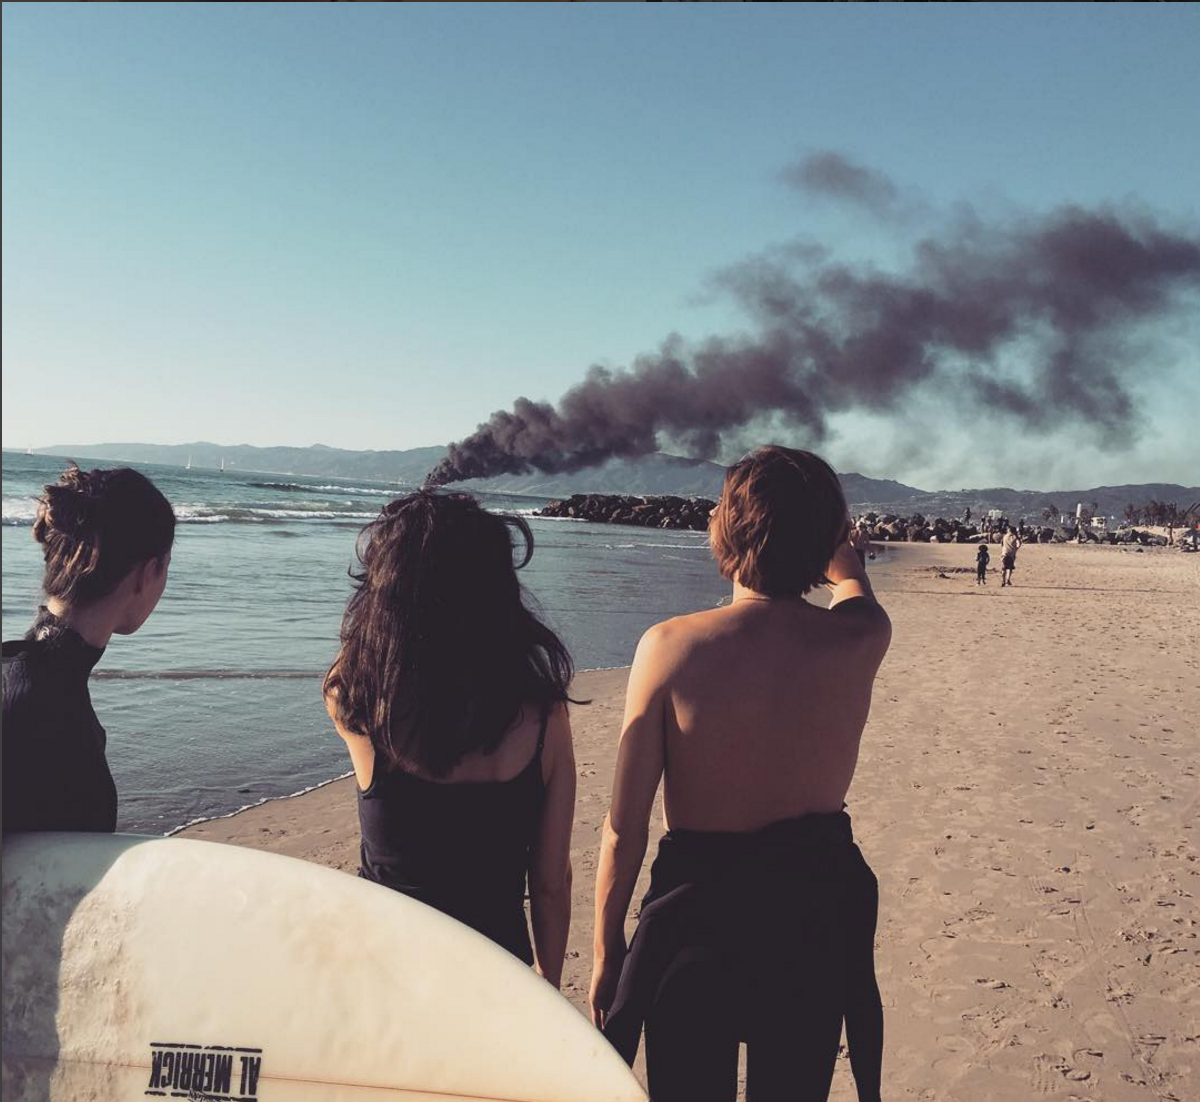 beach on fire.png